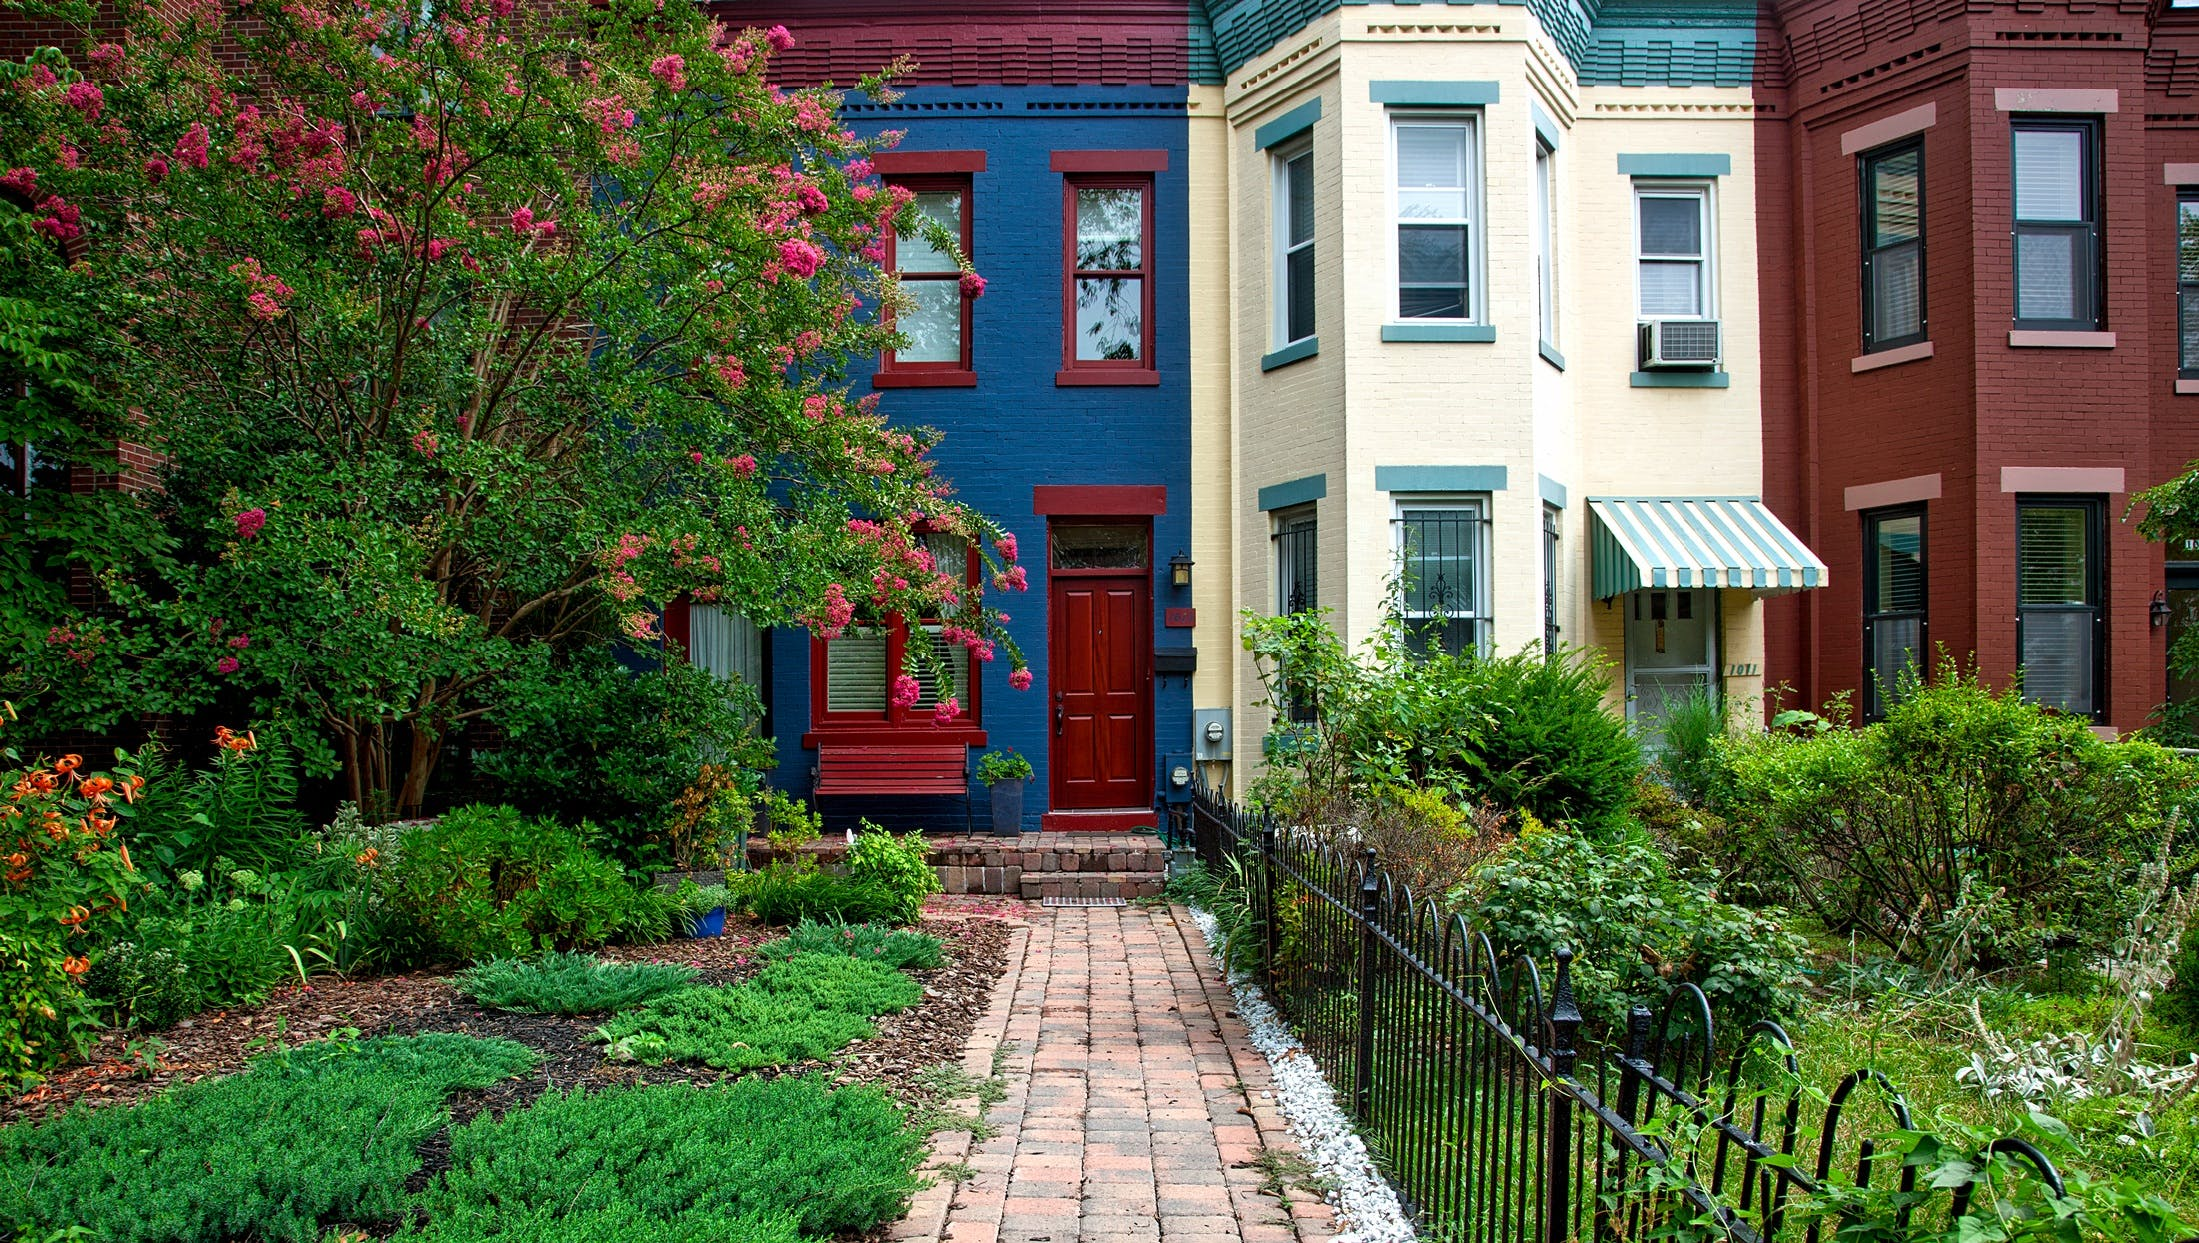 Free stock photo of city, garden, architecture, colorful